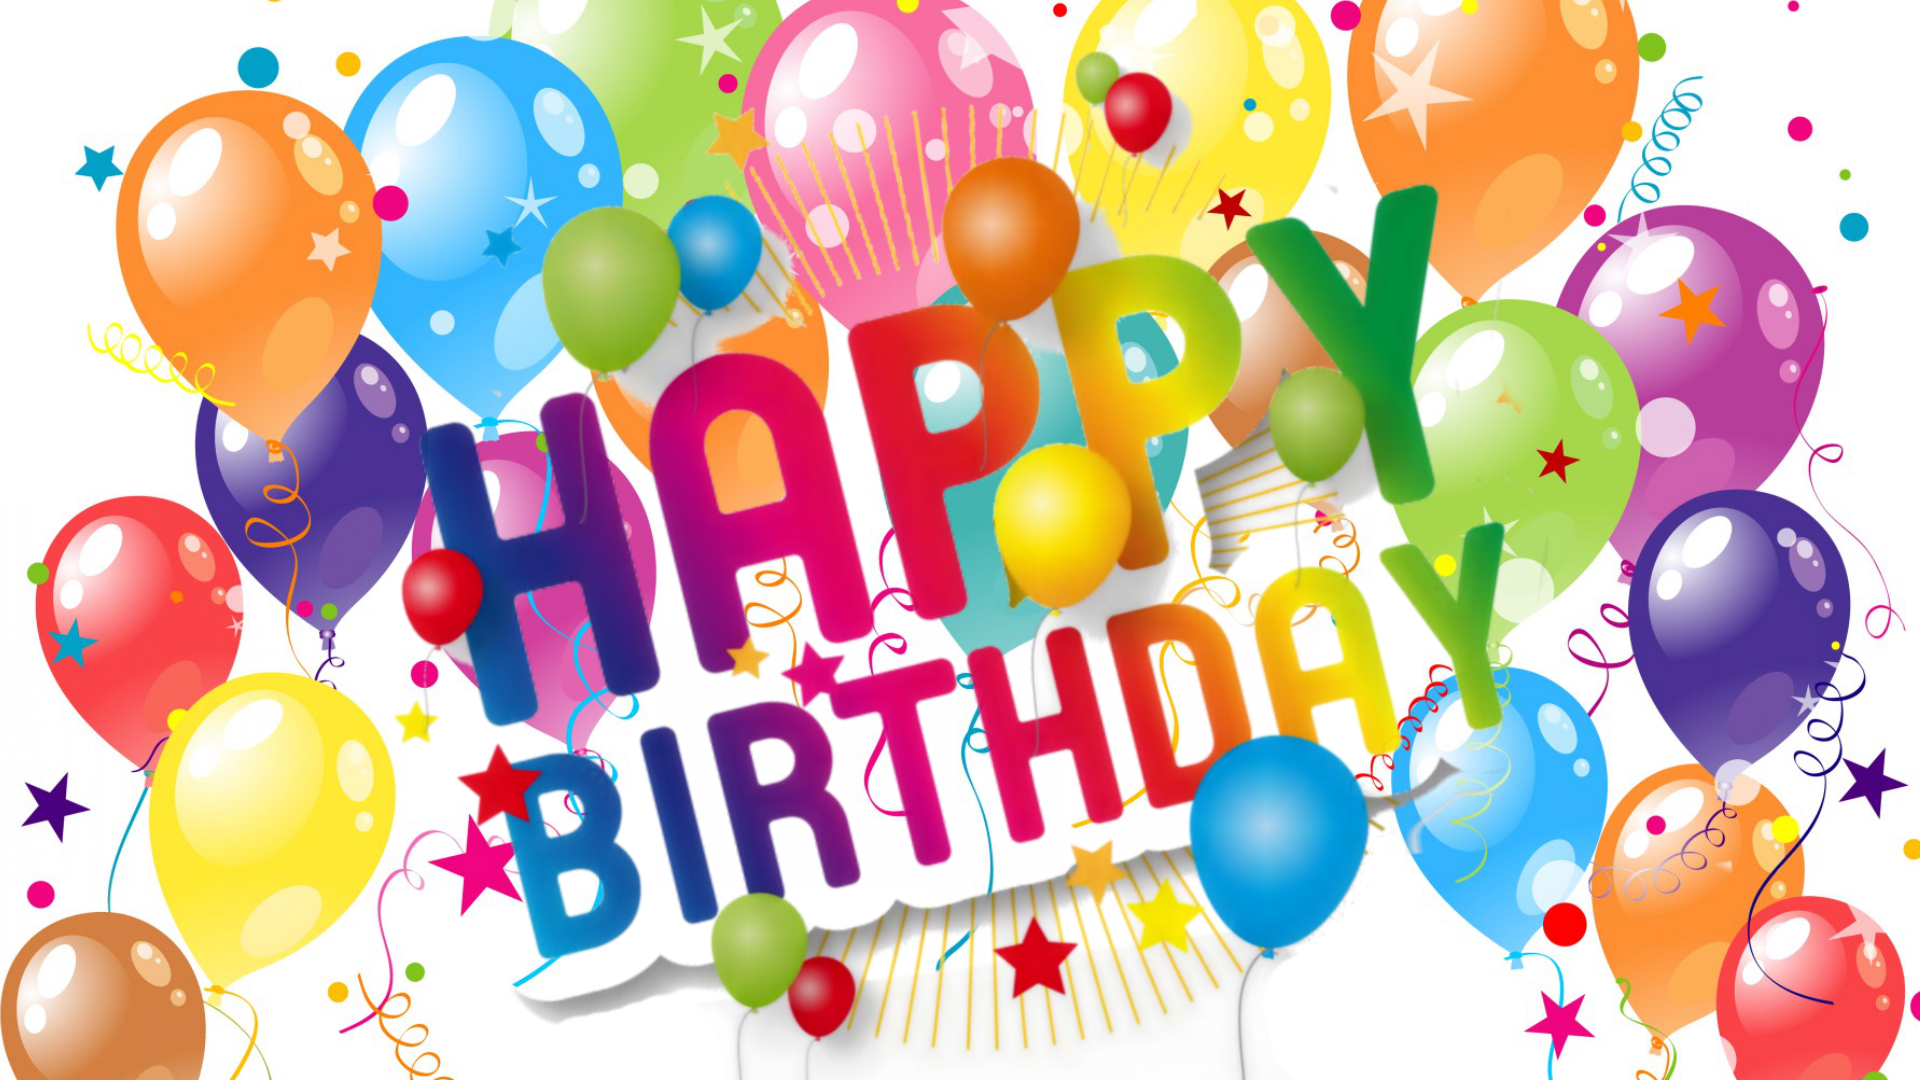 birthday banner images hd ; 519769